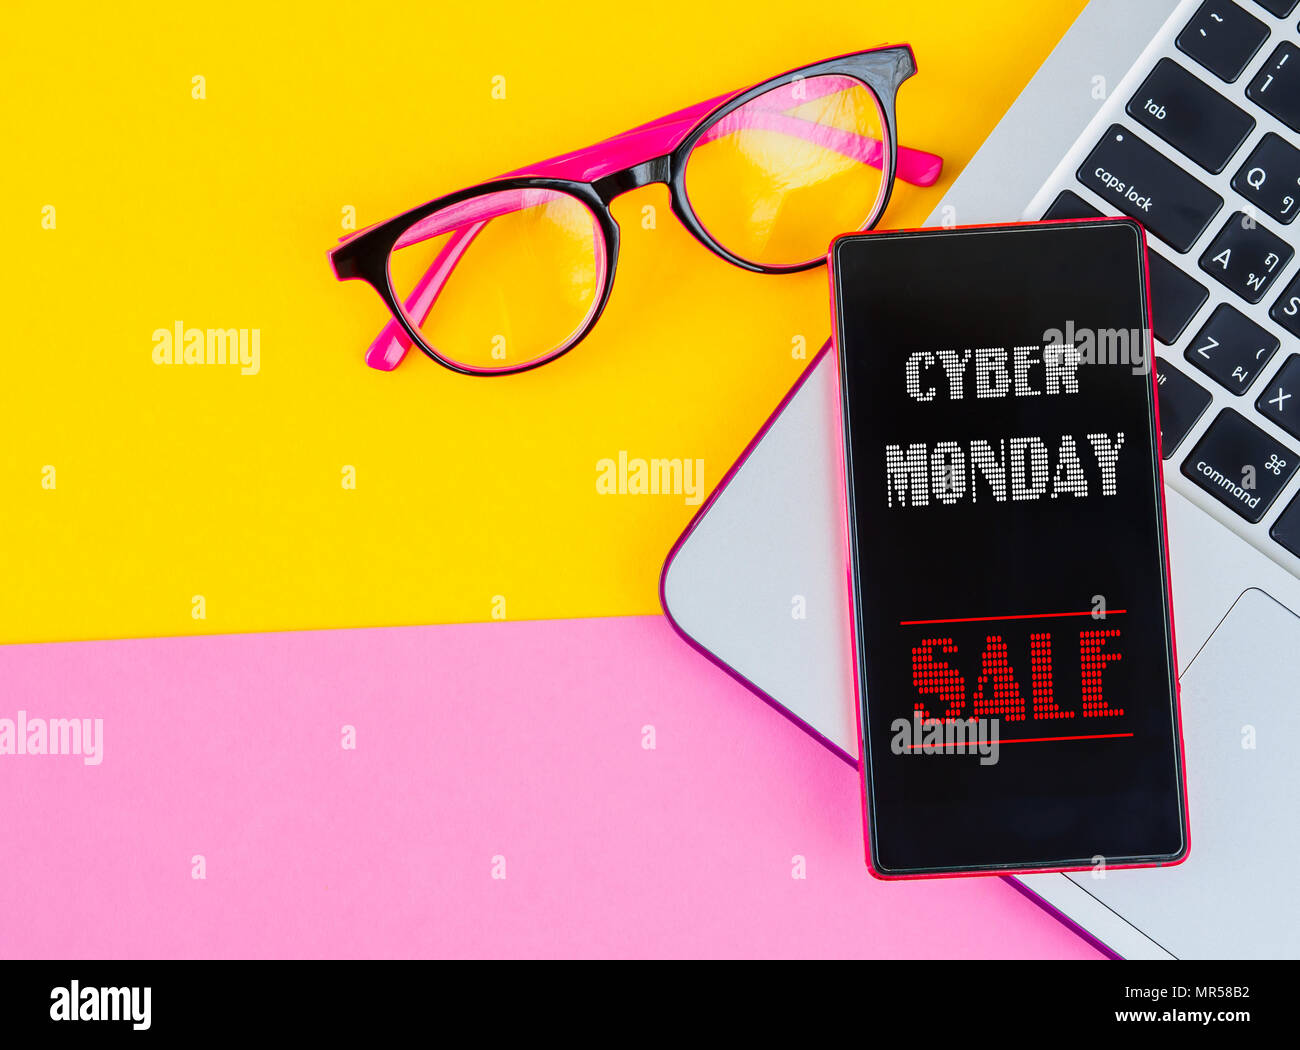 205ab8ccaa Cyber Monday sign on mobile phone over laptop with pink and yellow  background.